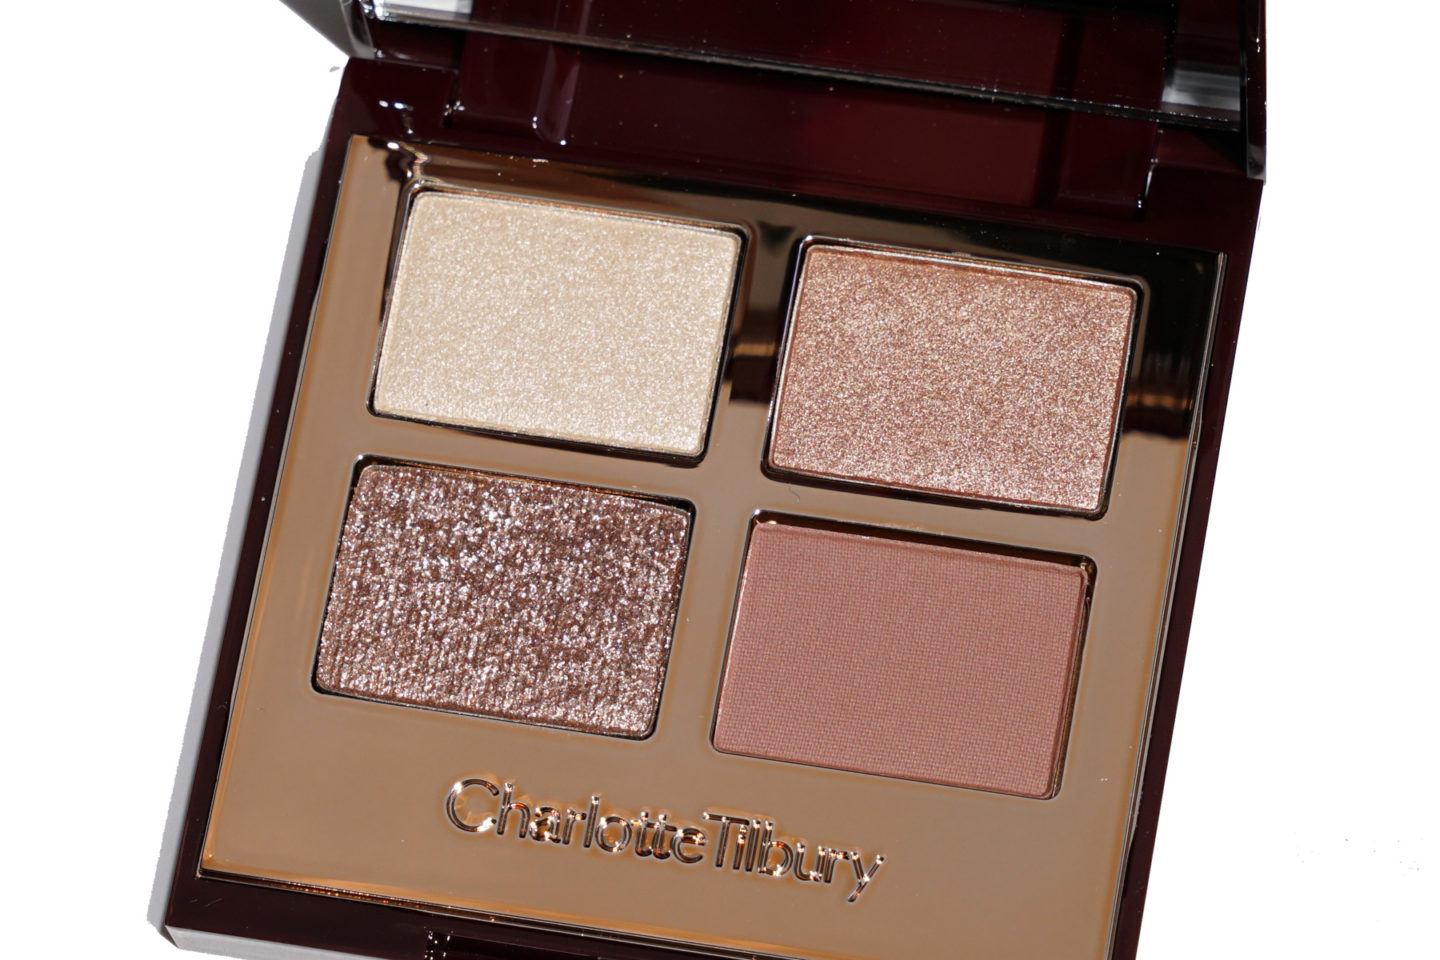 Charlotte Tilbury Plus grands yeux plus brillants Filtre Exaggereyes Palette d'ombres à paupières Review + Swatches